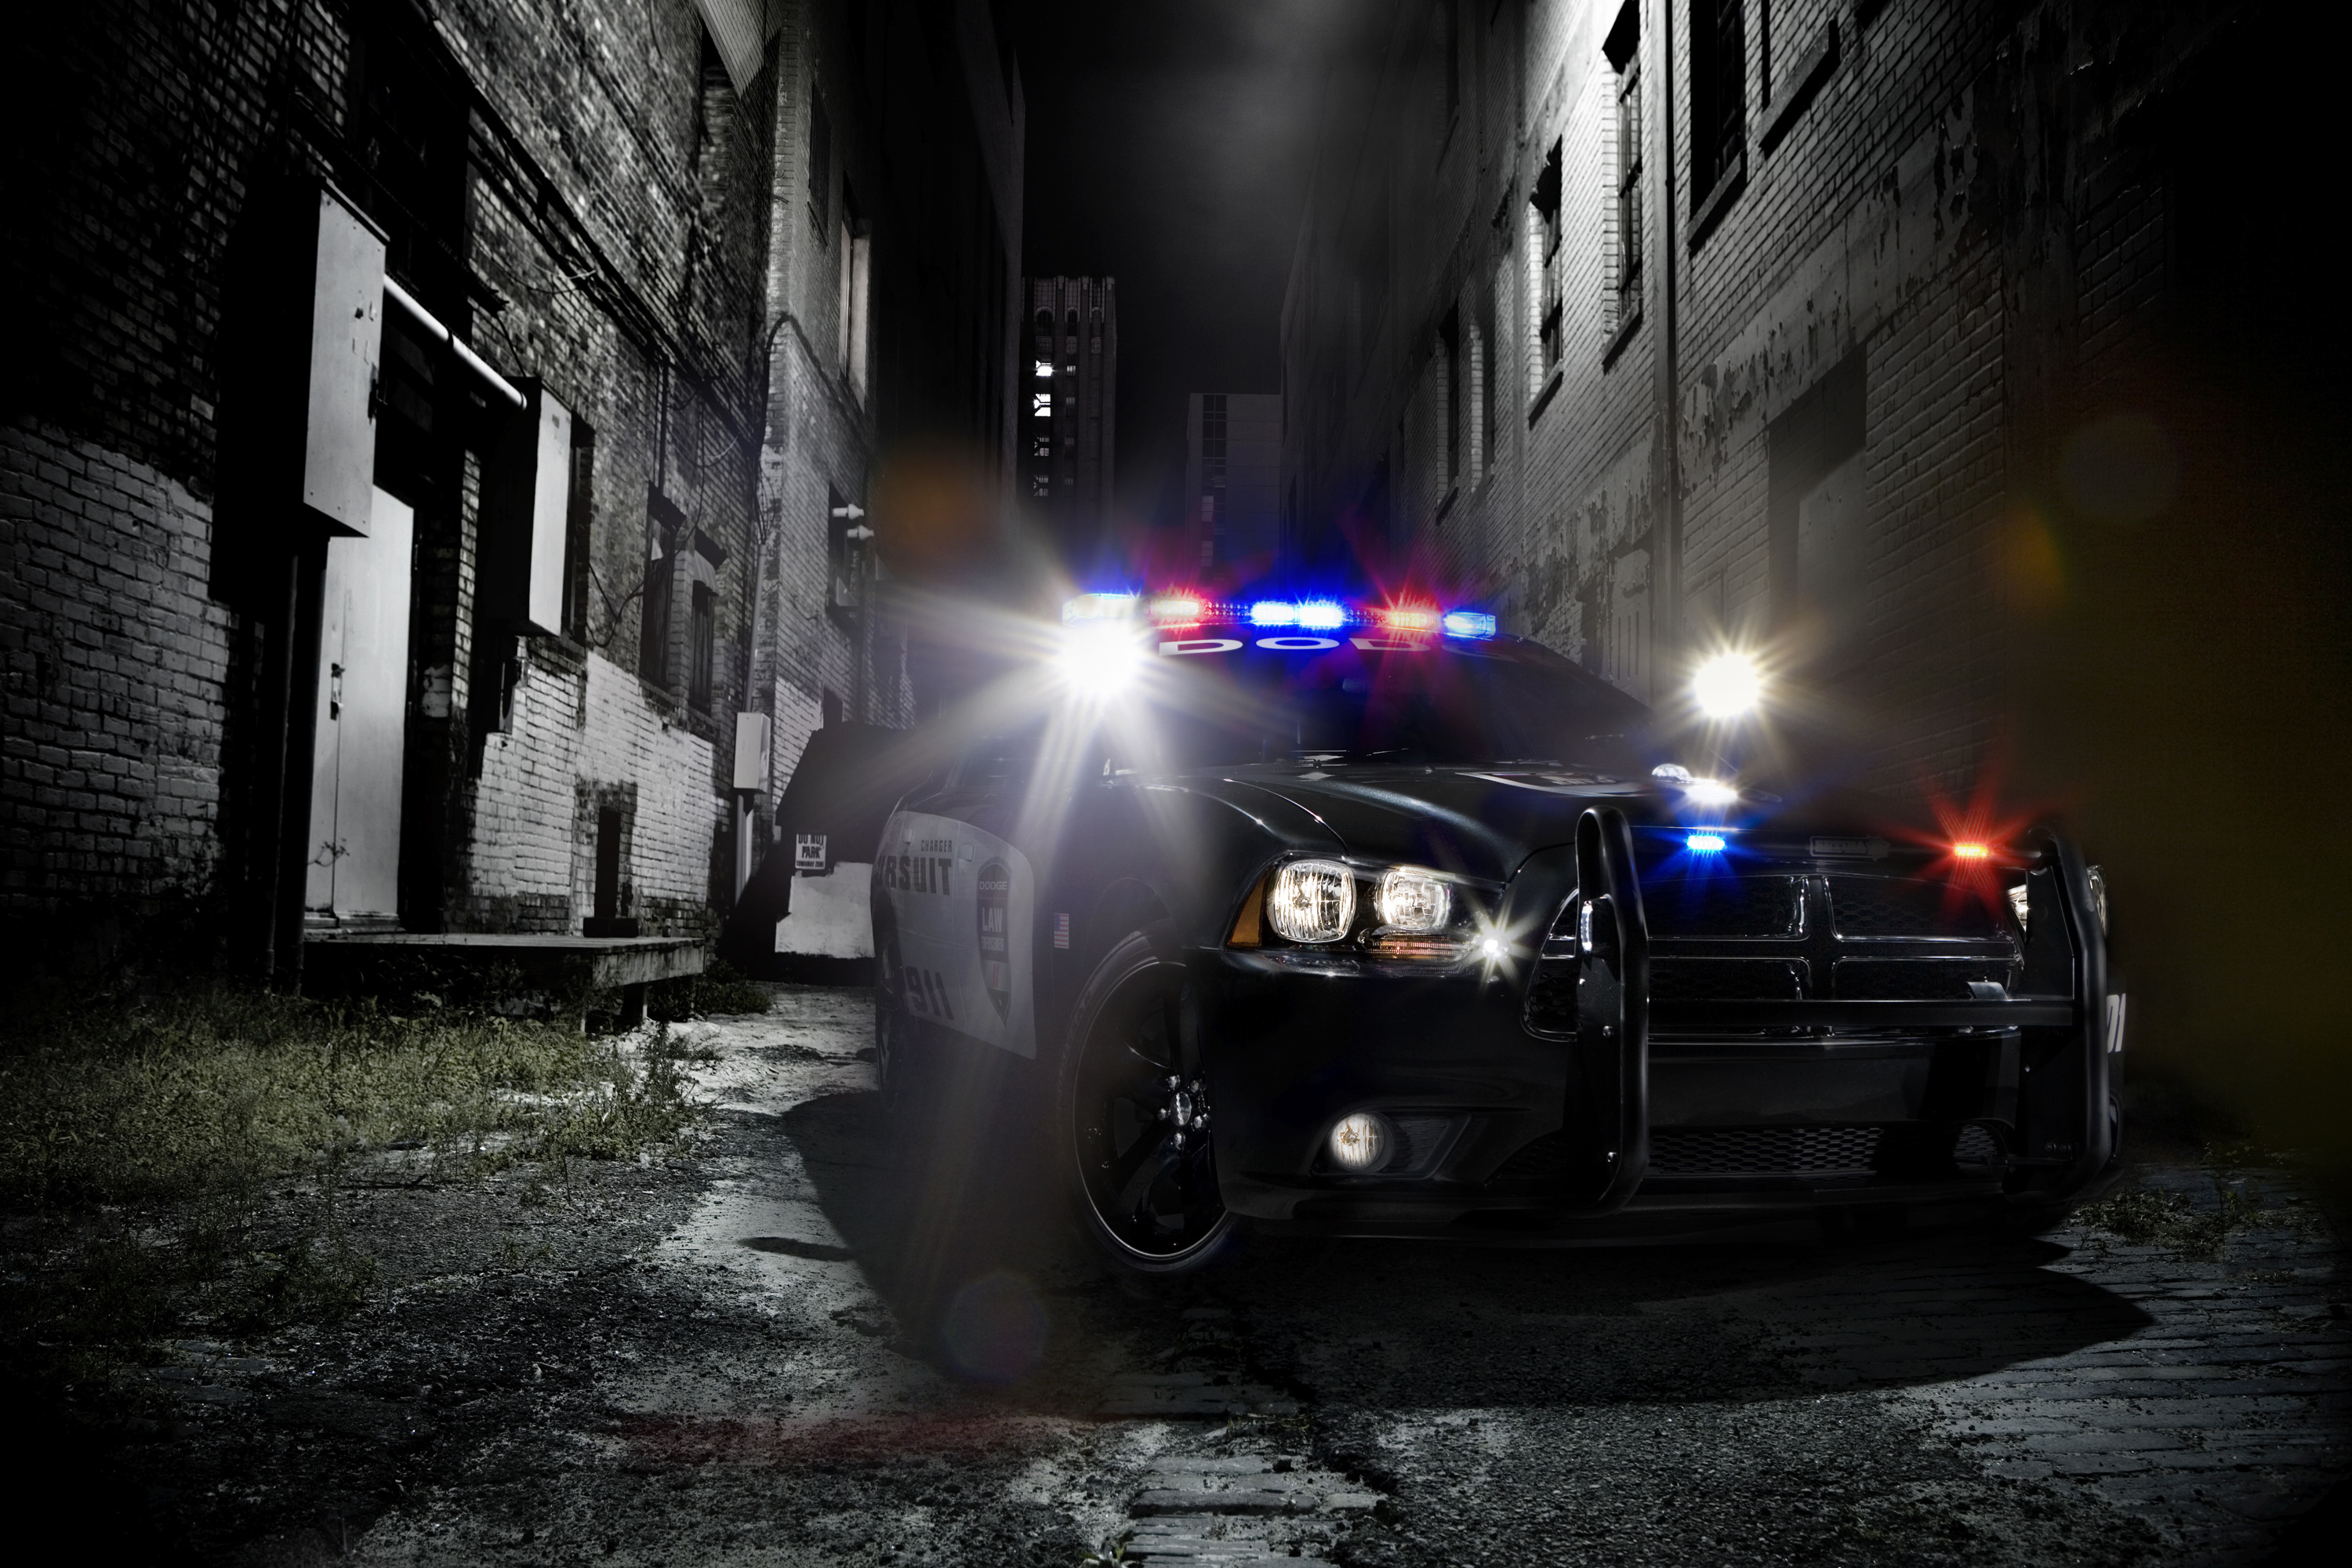 The 2011 Dodge Charger Pursuit will look pretty hard core in front of the doughnut shop.